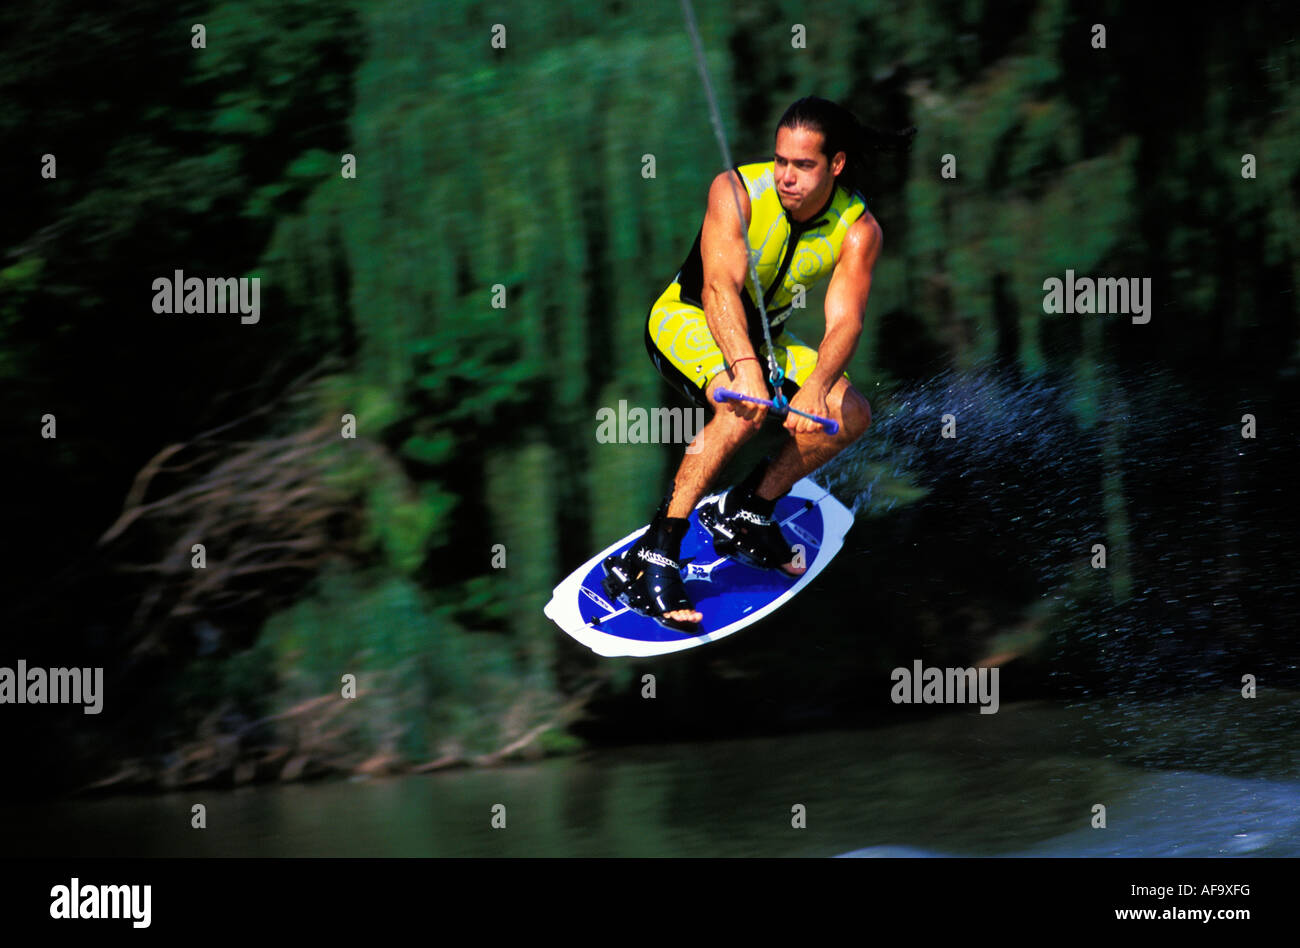 Water-skier on a wakeboard jumping South Africa - Stock Image